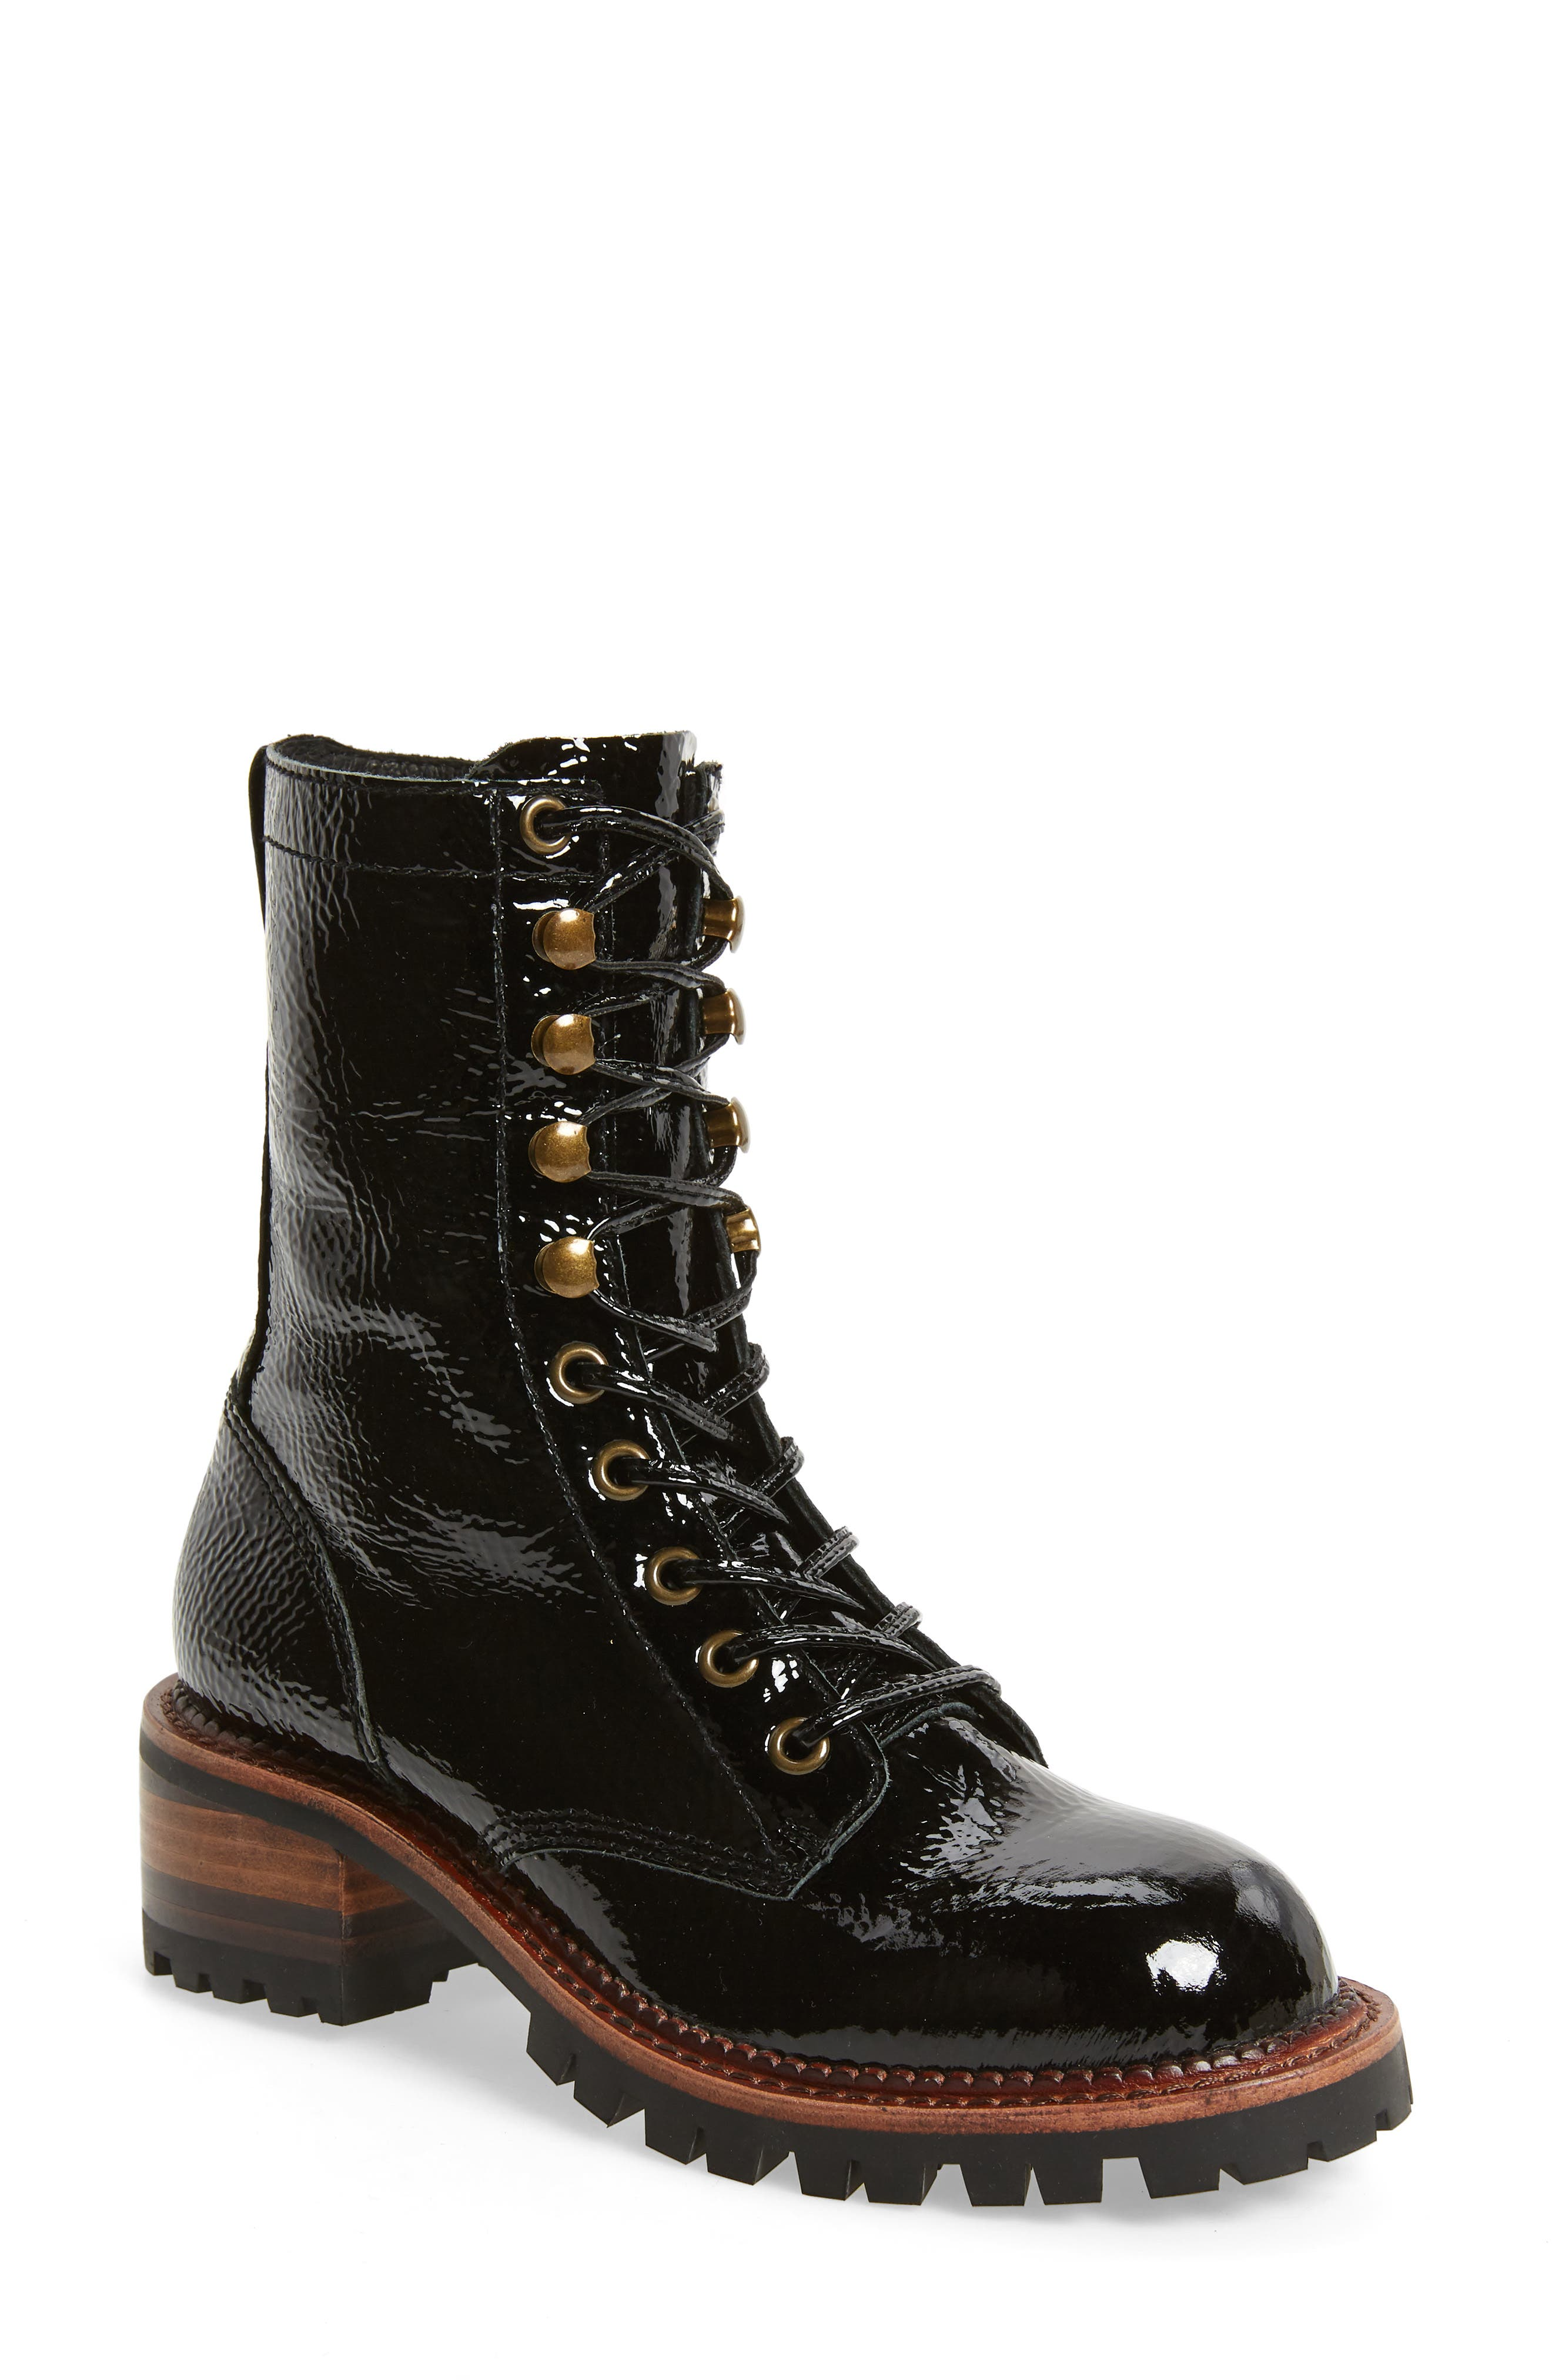 Sycamore Patent Leather Boot, Main, color, BLACK CRINKLE PATENT LEATHER